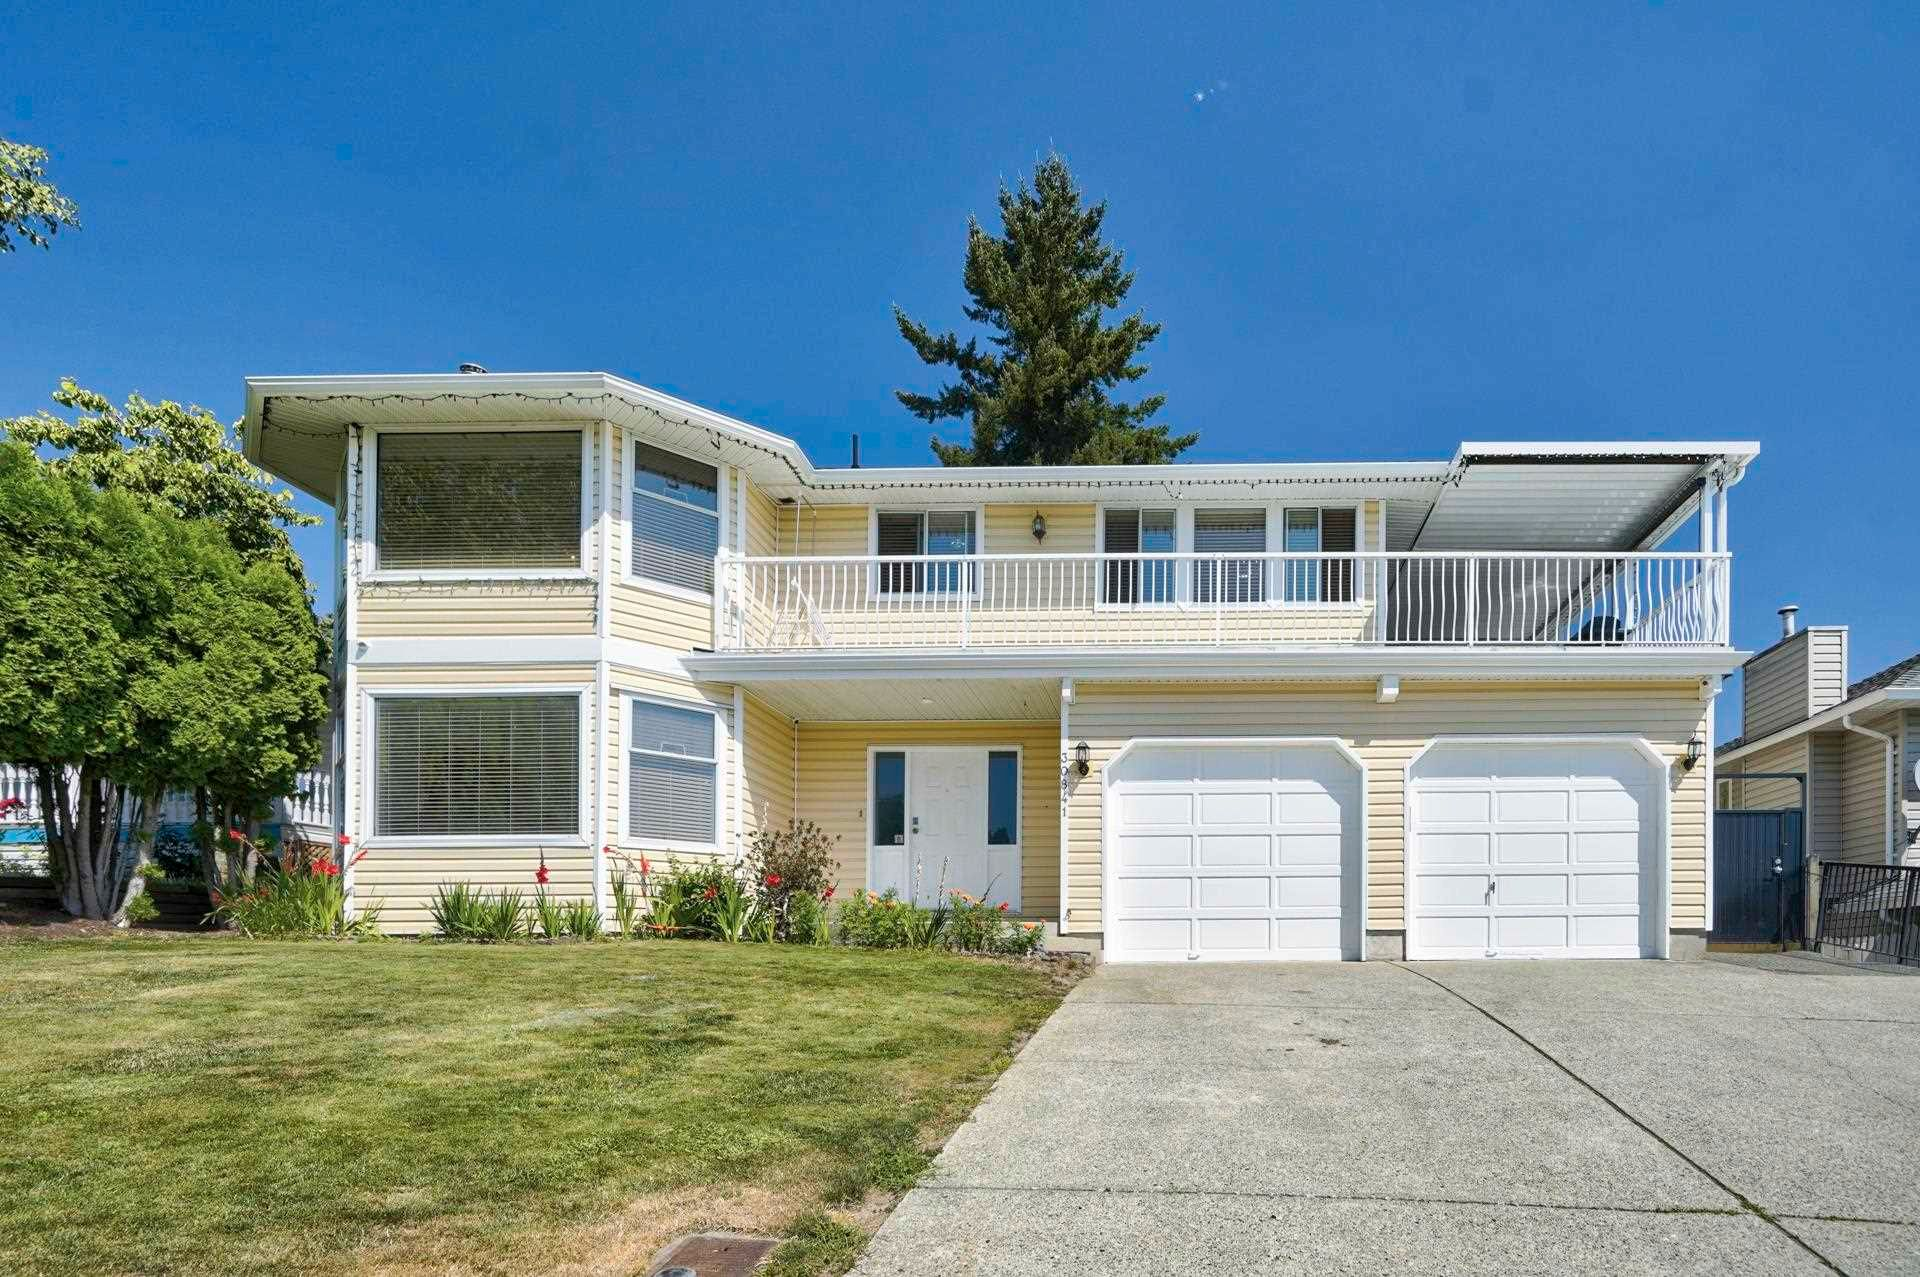 Main Photo: 30841 CARDINAL Avenue in Abbotsford: Abbotsford West House for sale : MLS®# R2606723